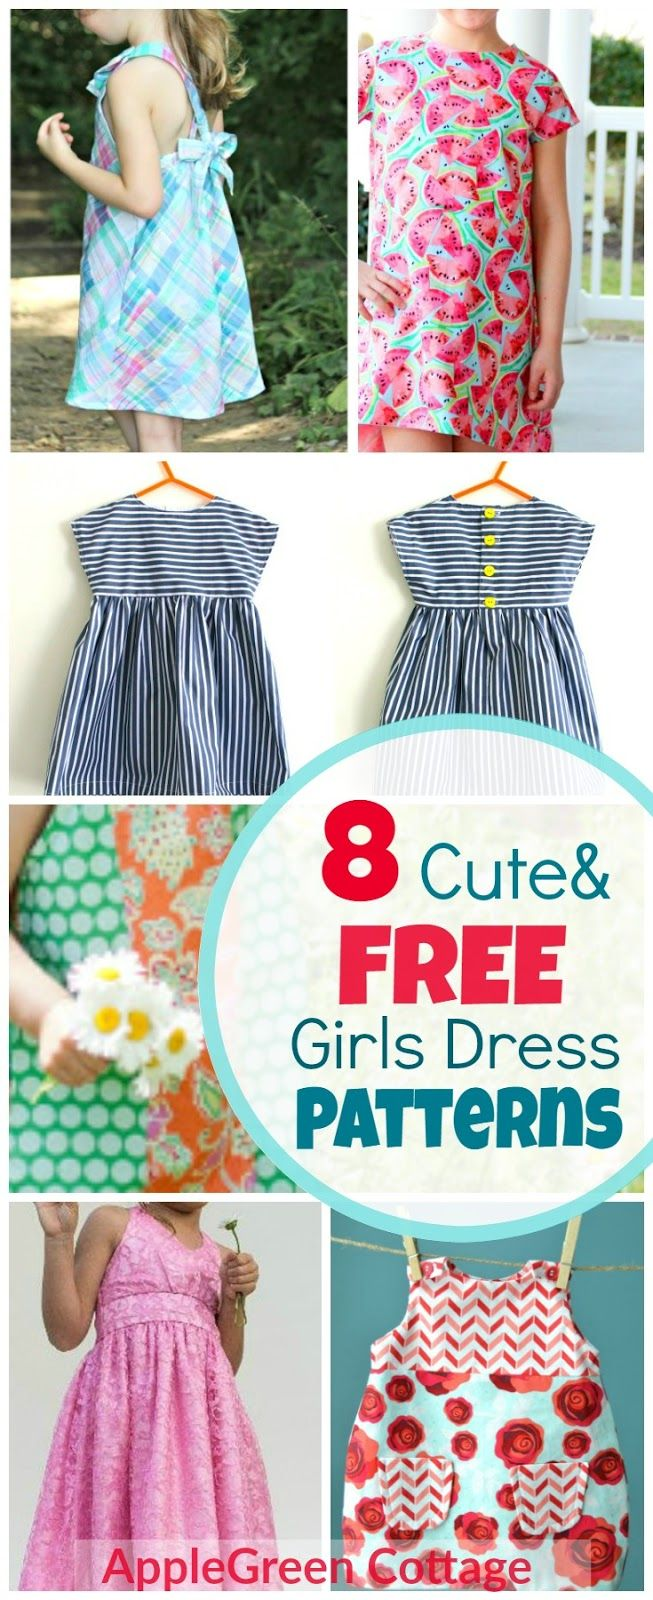 8 free patterns for cute girls dresses. Great beginner sewing projects (because there's always a tutorial added to the free pattern, yey!) Can you imagine anything cuter than a little girl's smile when twirling in an adorable summer dress?